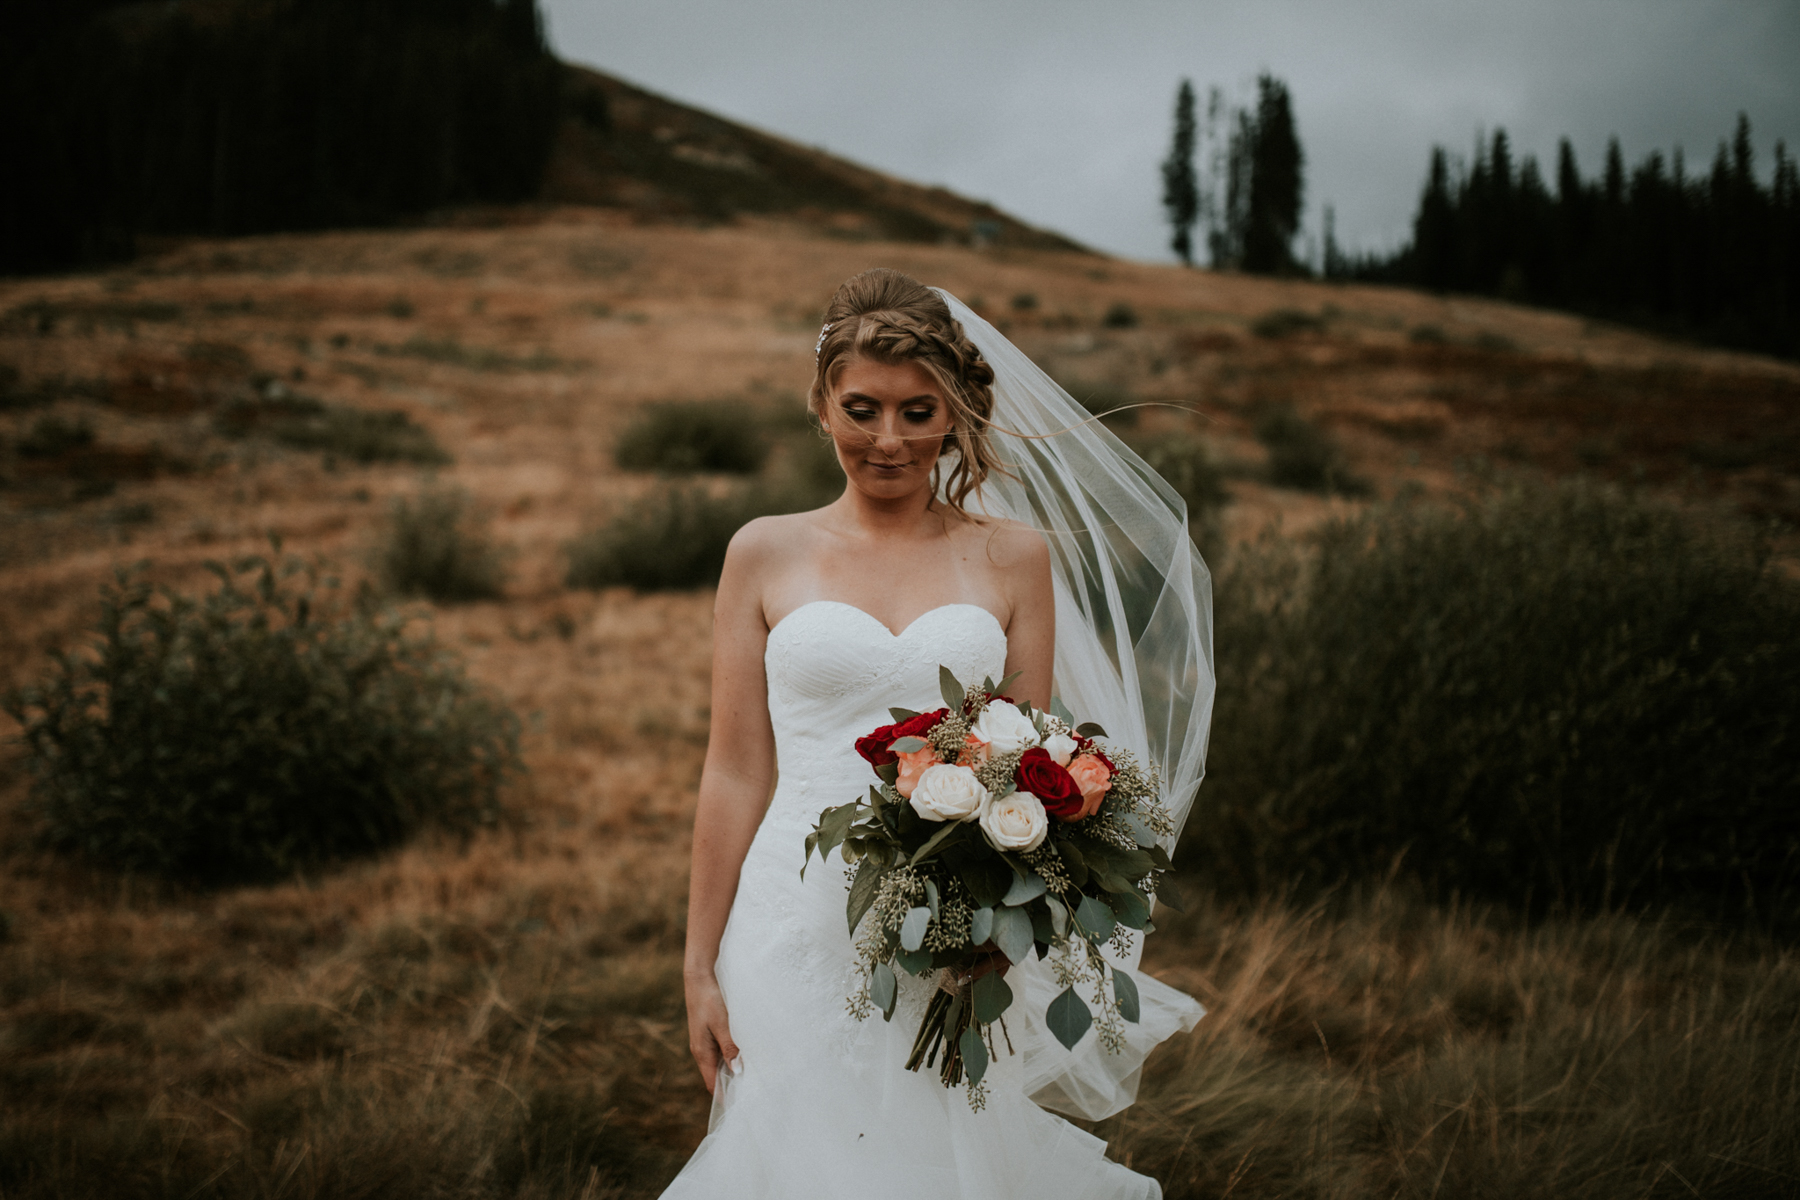 kimkyle_wedding_blush361.jpg